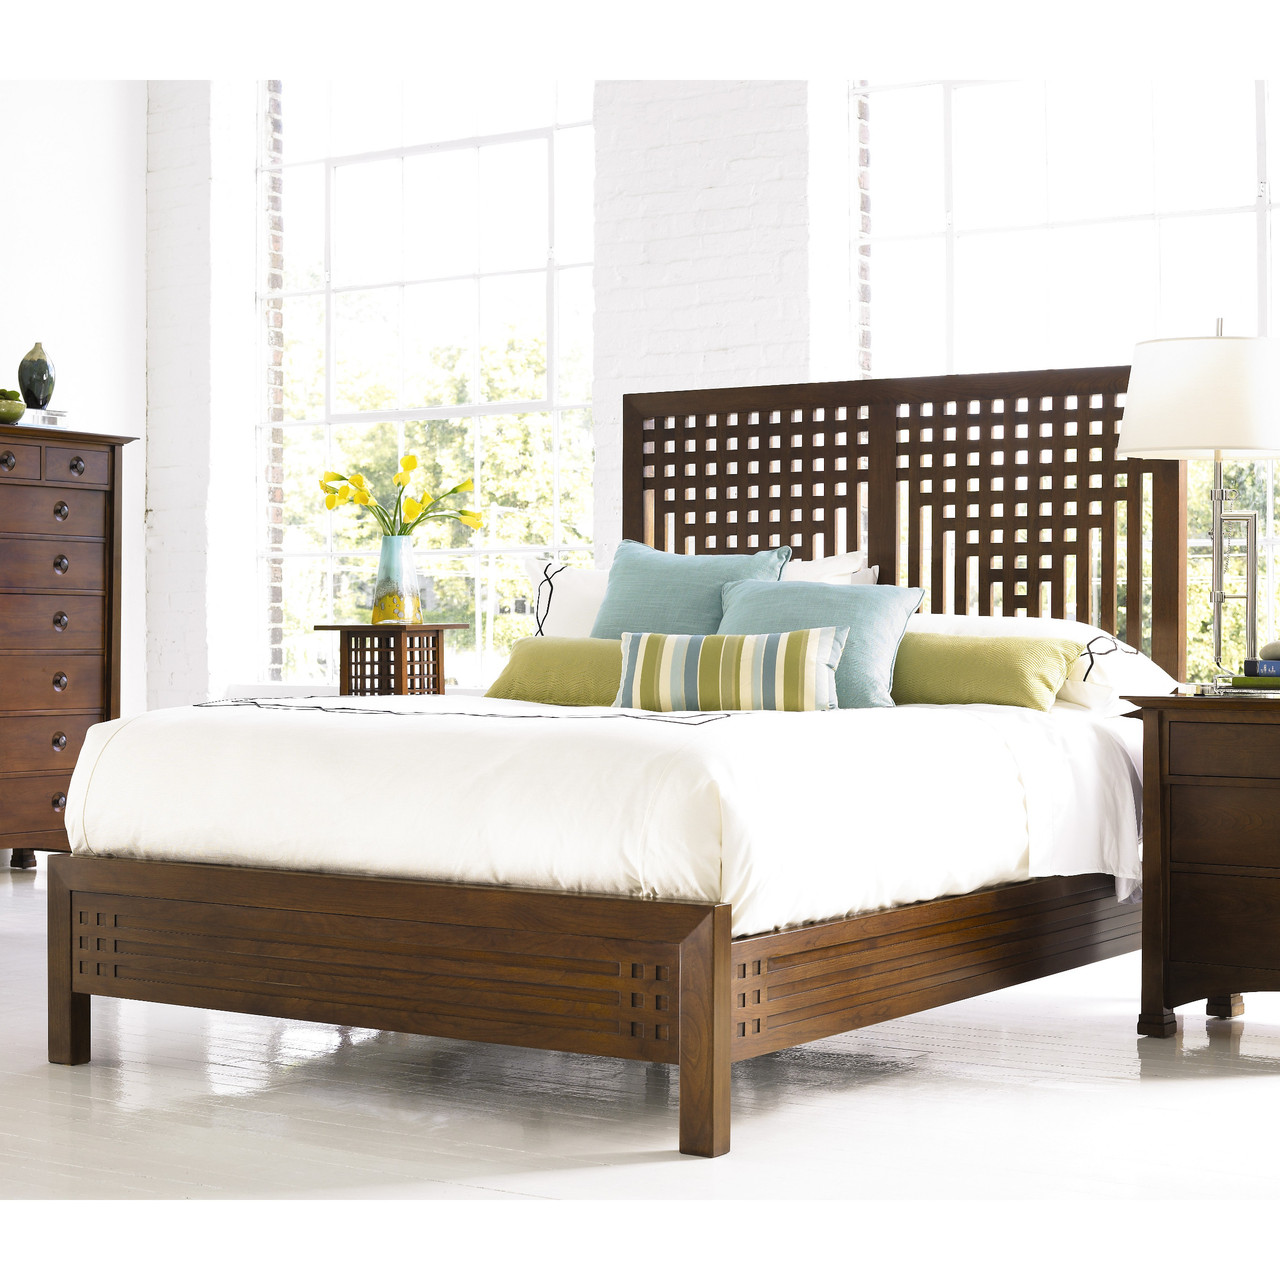 willow bed designed by stickley's edinburg collection with lattice-style headboard top 3 beds by virginia wayside furniture